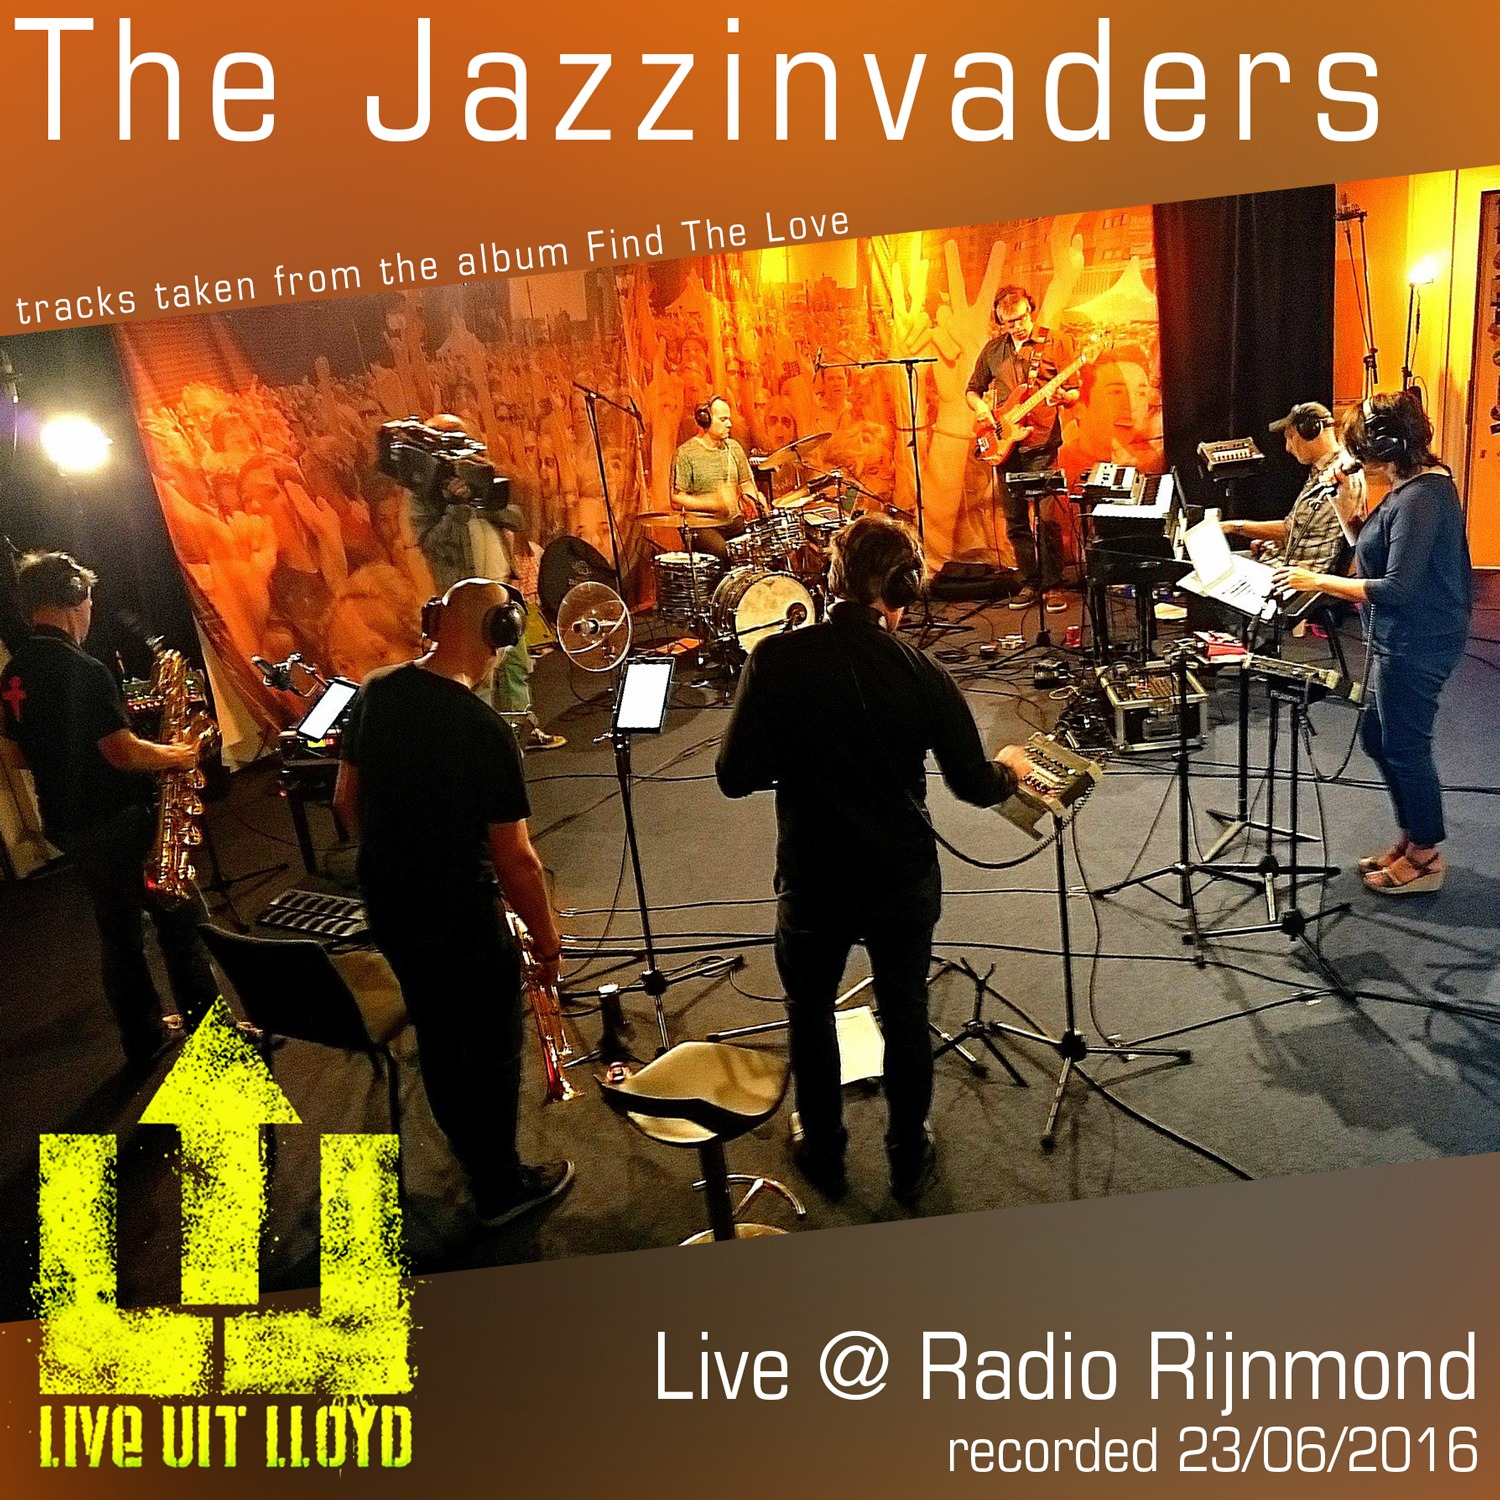 Free Jazzinvaders downloads